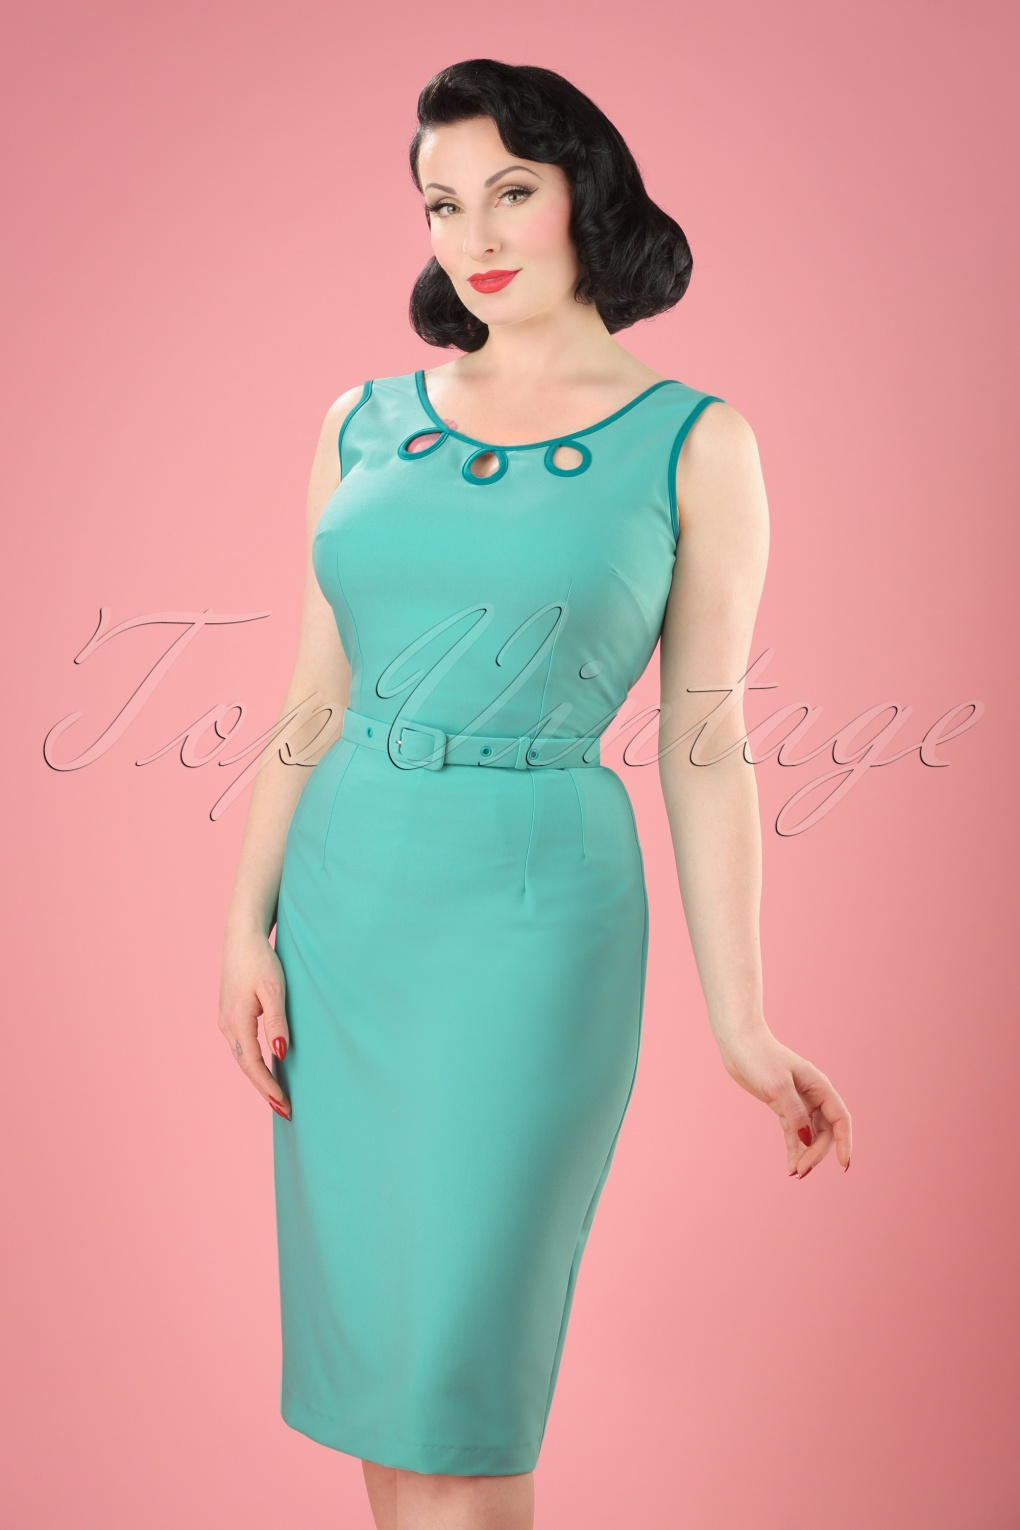 1940s Pinup Dresses for Sale 50s Karen Pencil Dress in Mint Blue £63.68 AT vintagedancer.com